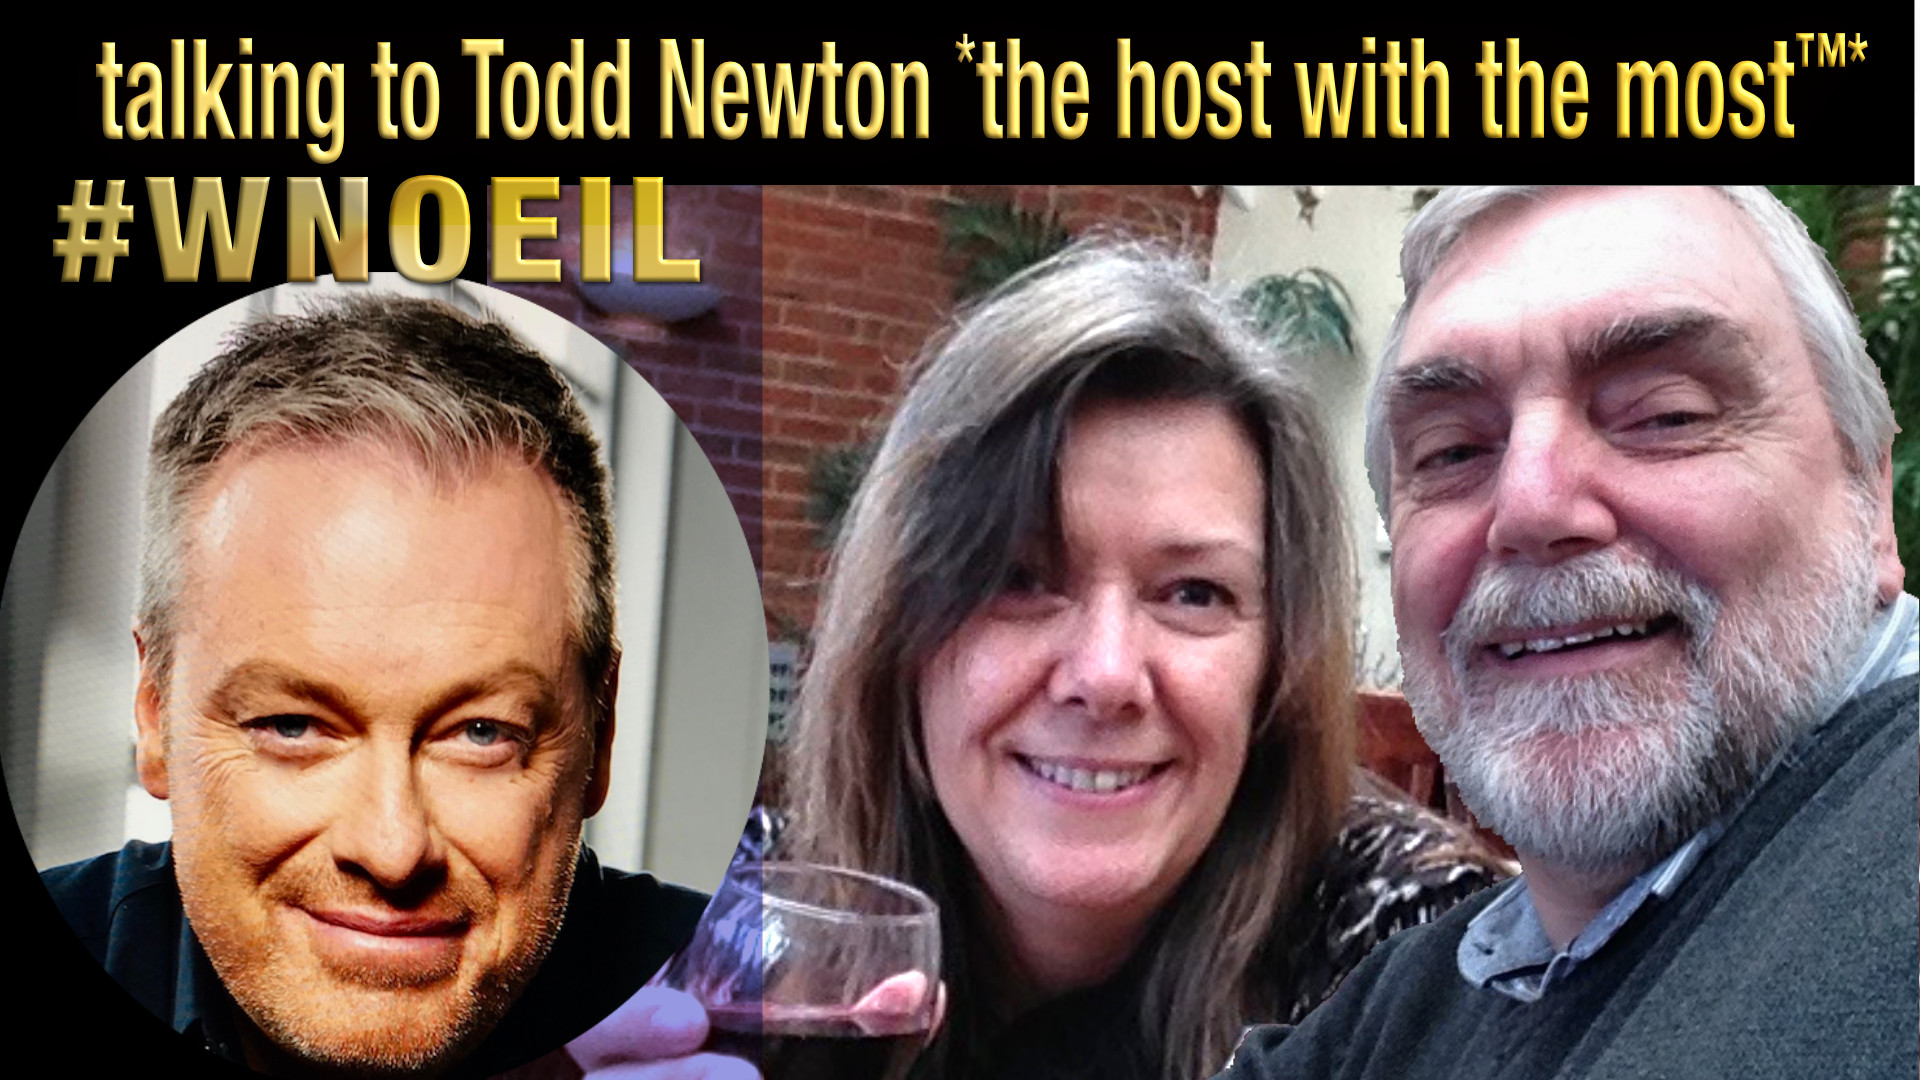 WNOEIL podcast talking success with Todd Newton the host with the most